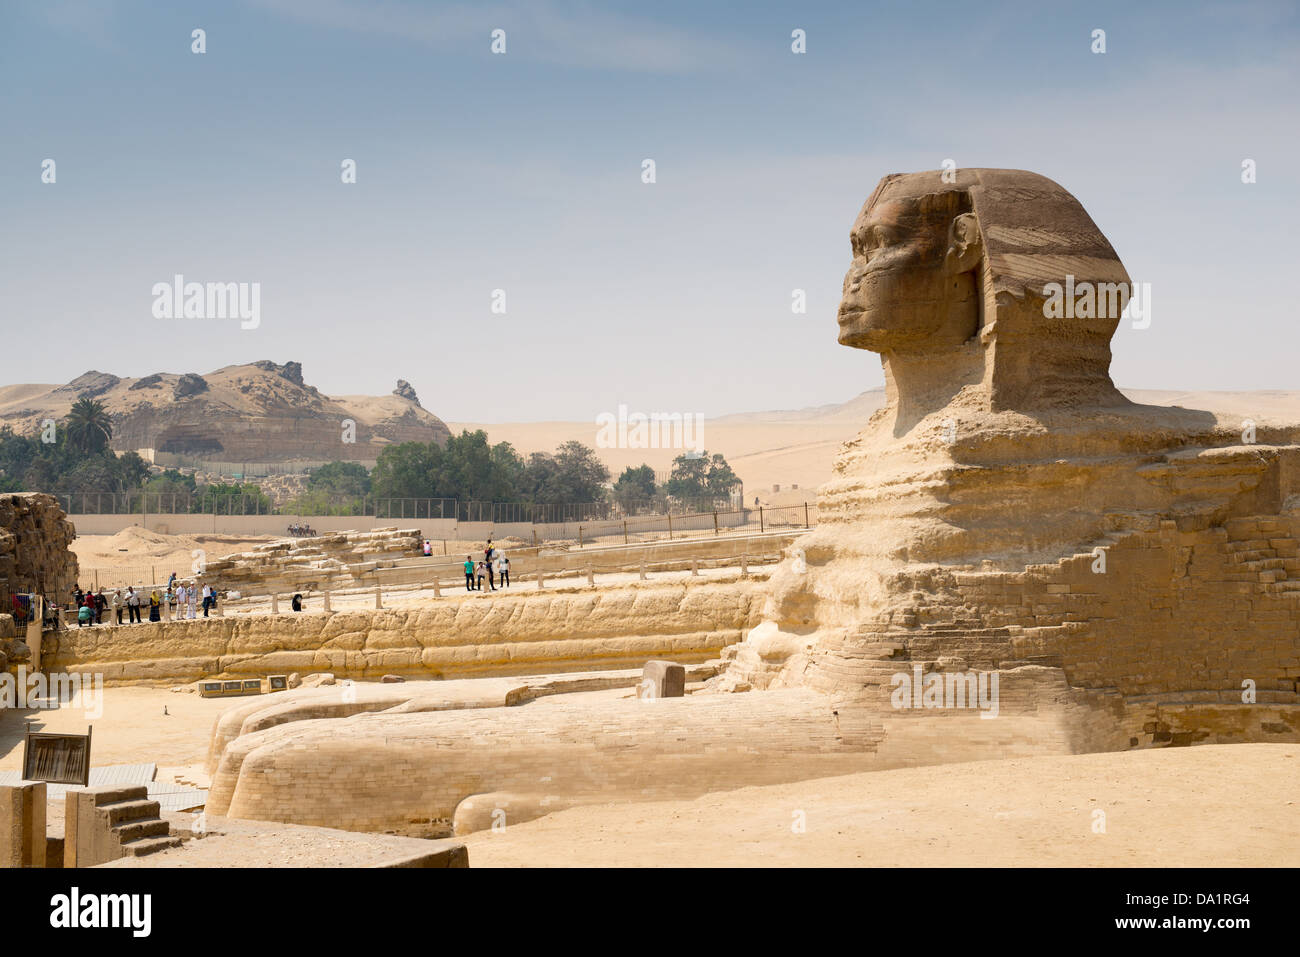 Famous ancient statue of Sphinx in Giza, Egypt. Every day crowds of tourists visit the Sphinx in Giza - Stock Image